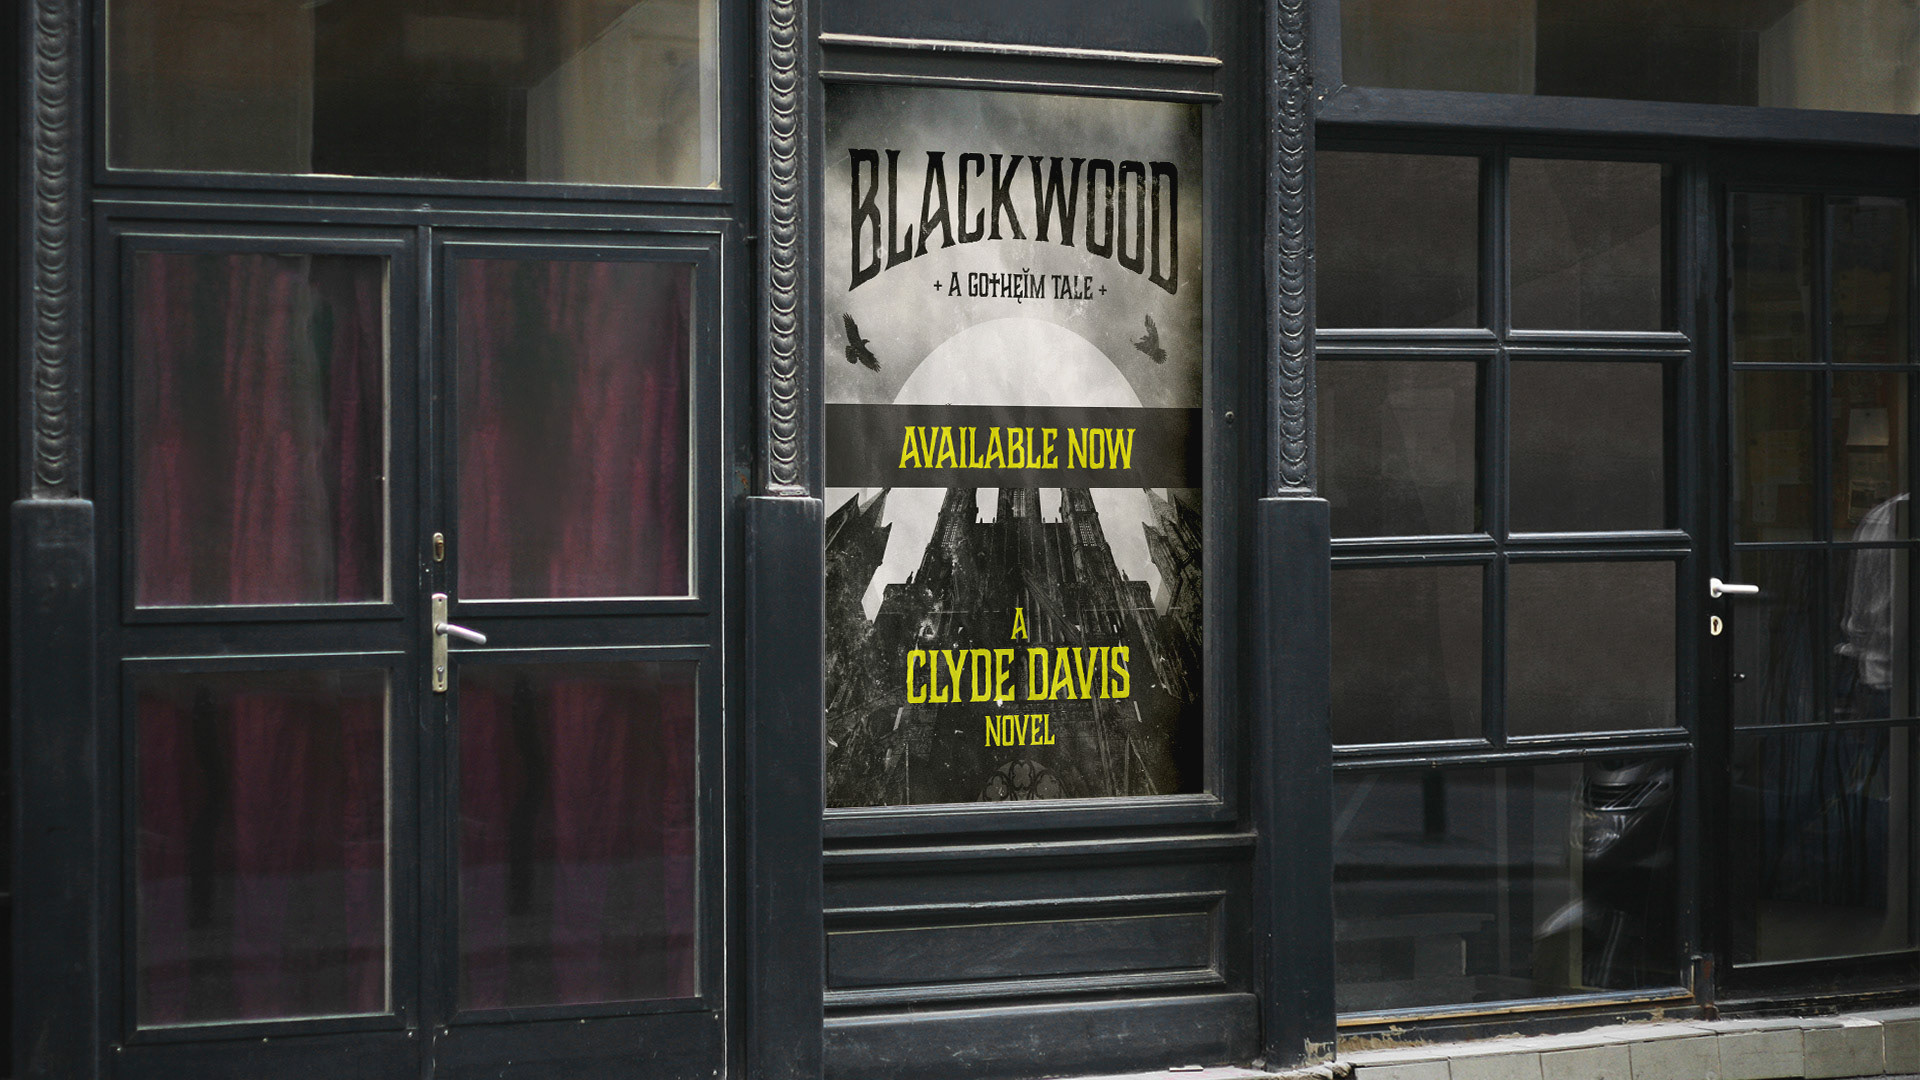 a mockup of a blackwood poster in front of an old book shop